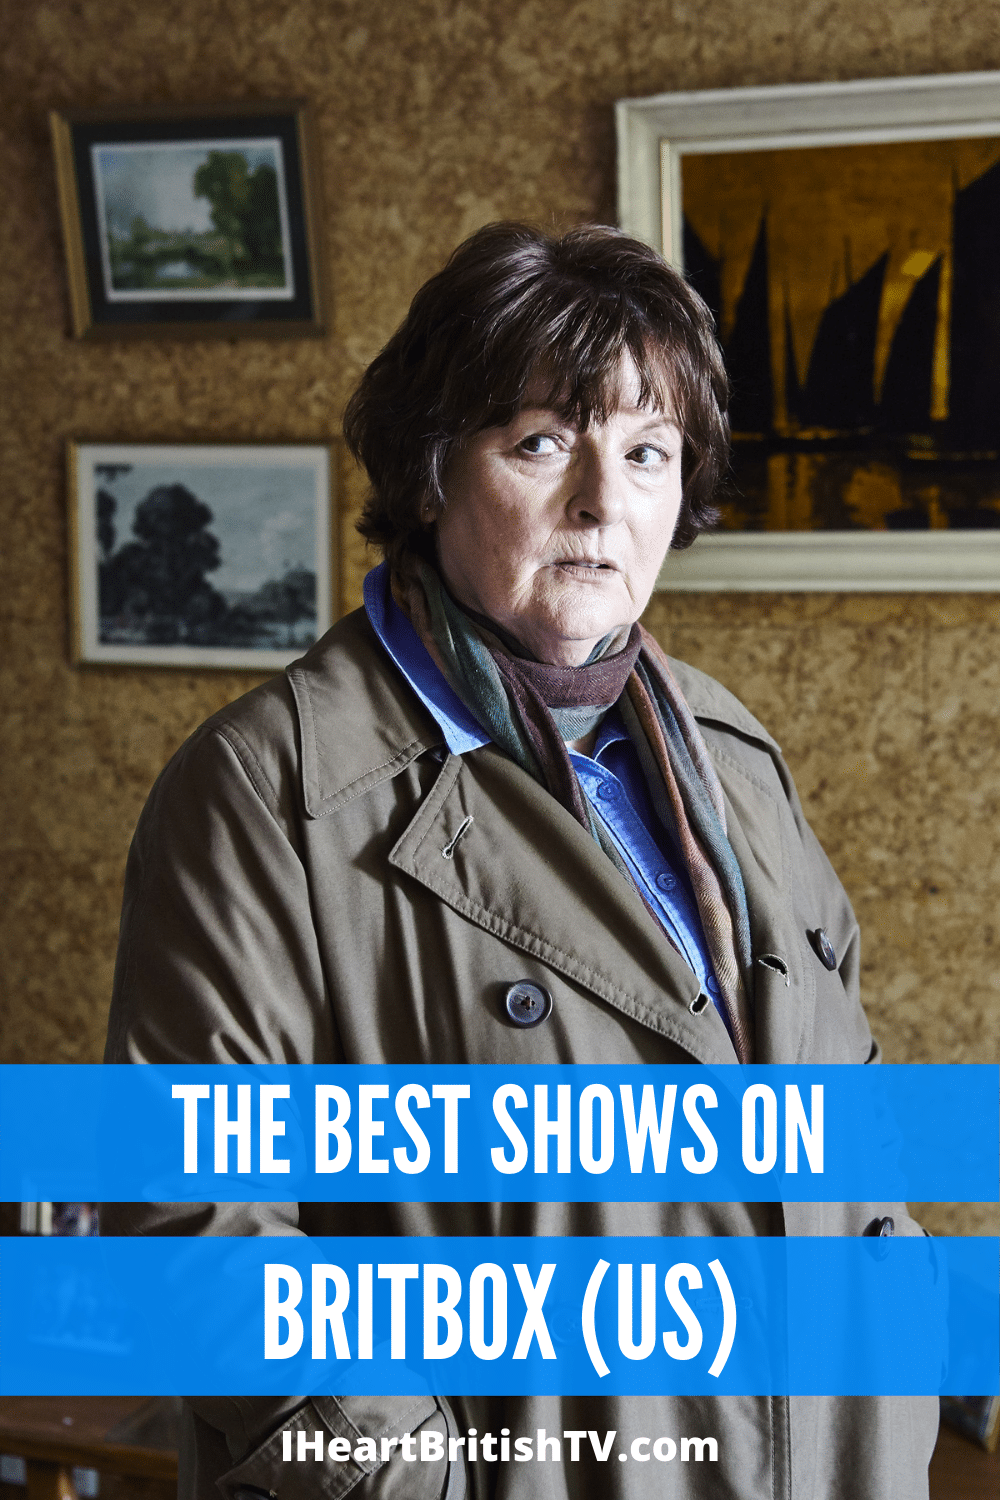 The Best Shows on BritBox 23